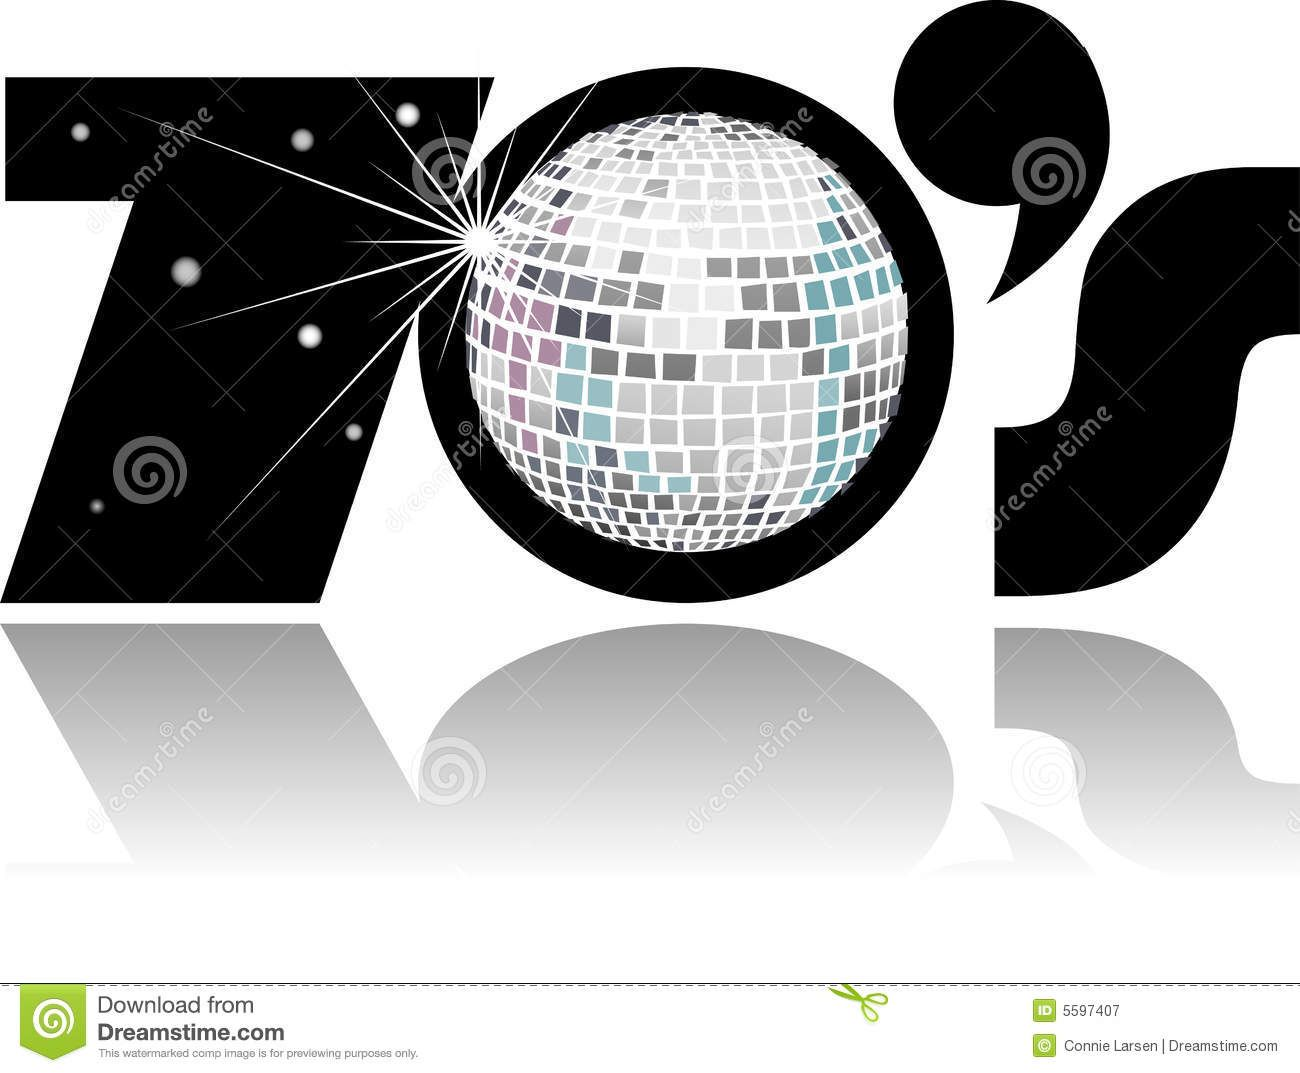 70 s party clipart png download dance scene clipart - Google Search | Bar Clips | Disco ball, 70s party png download